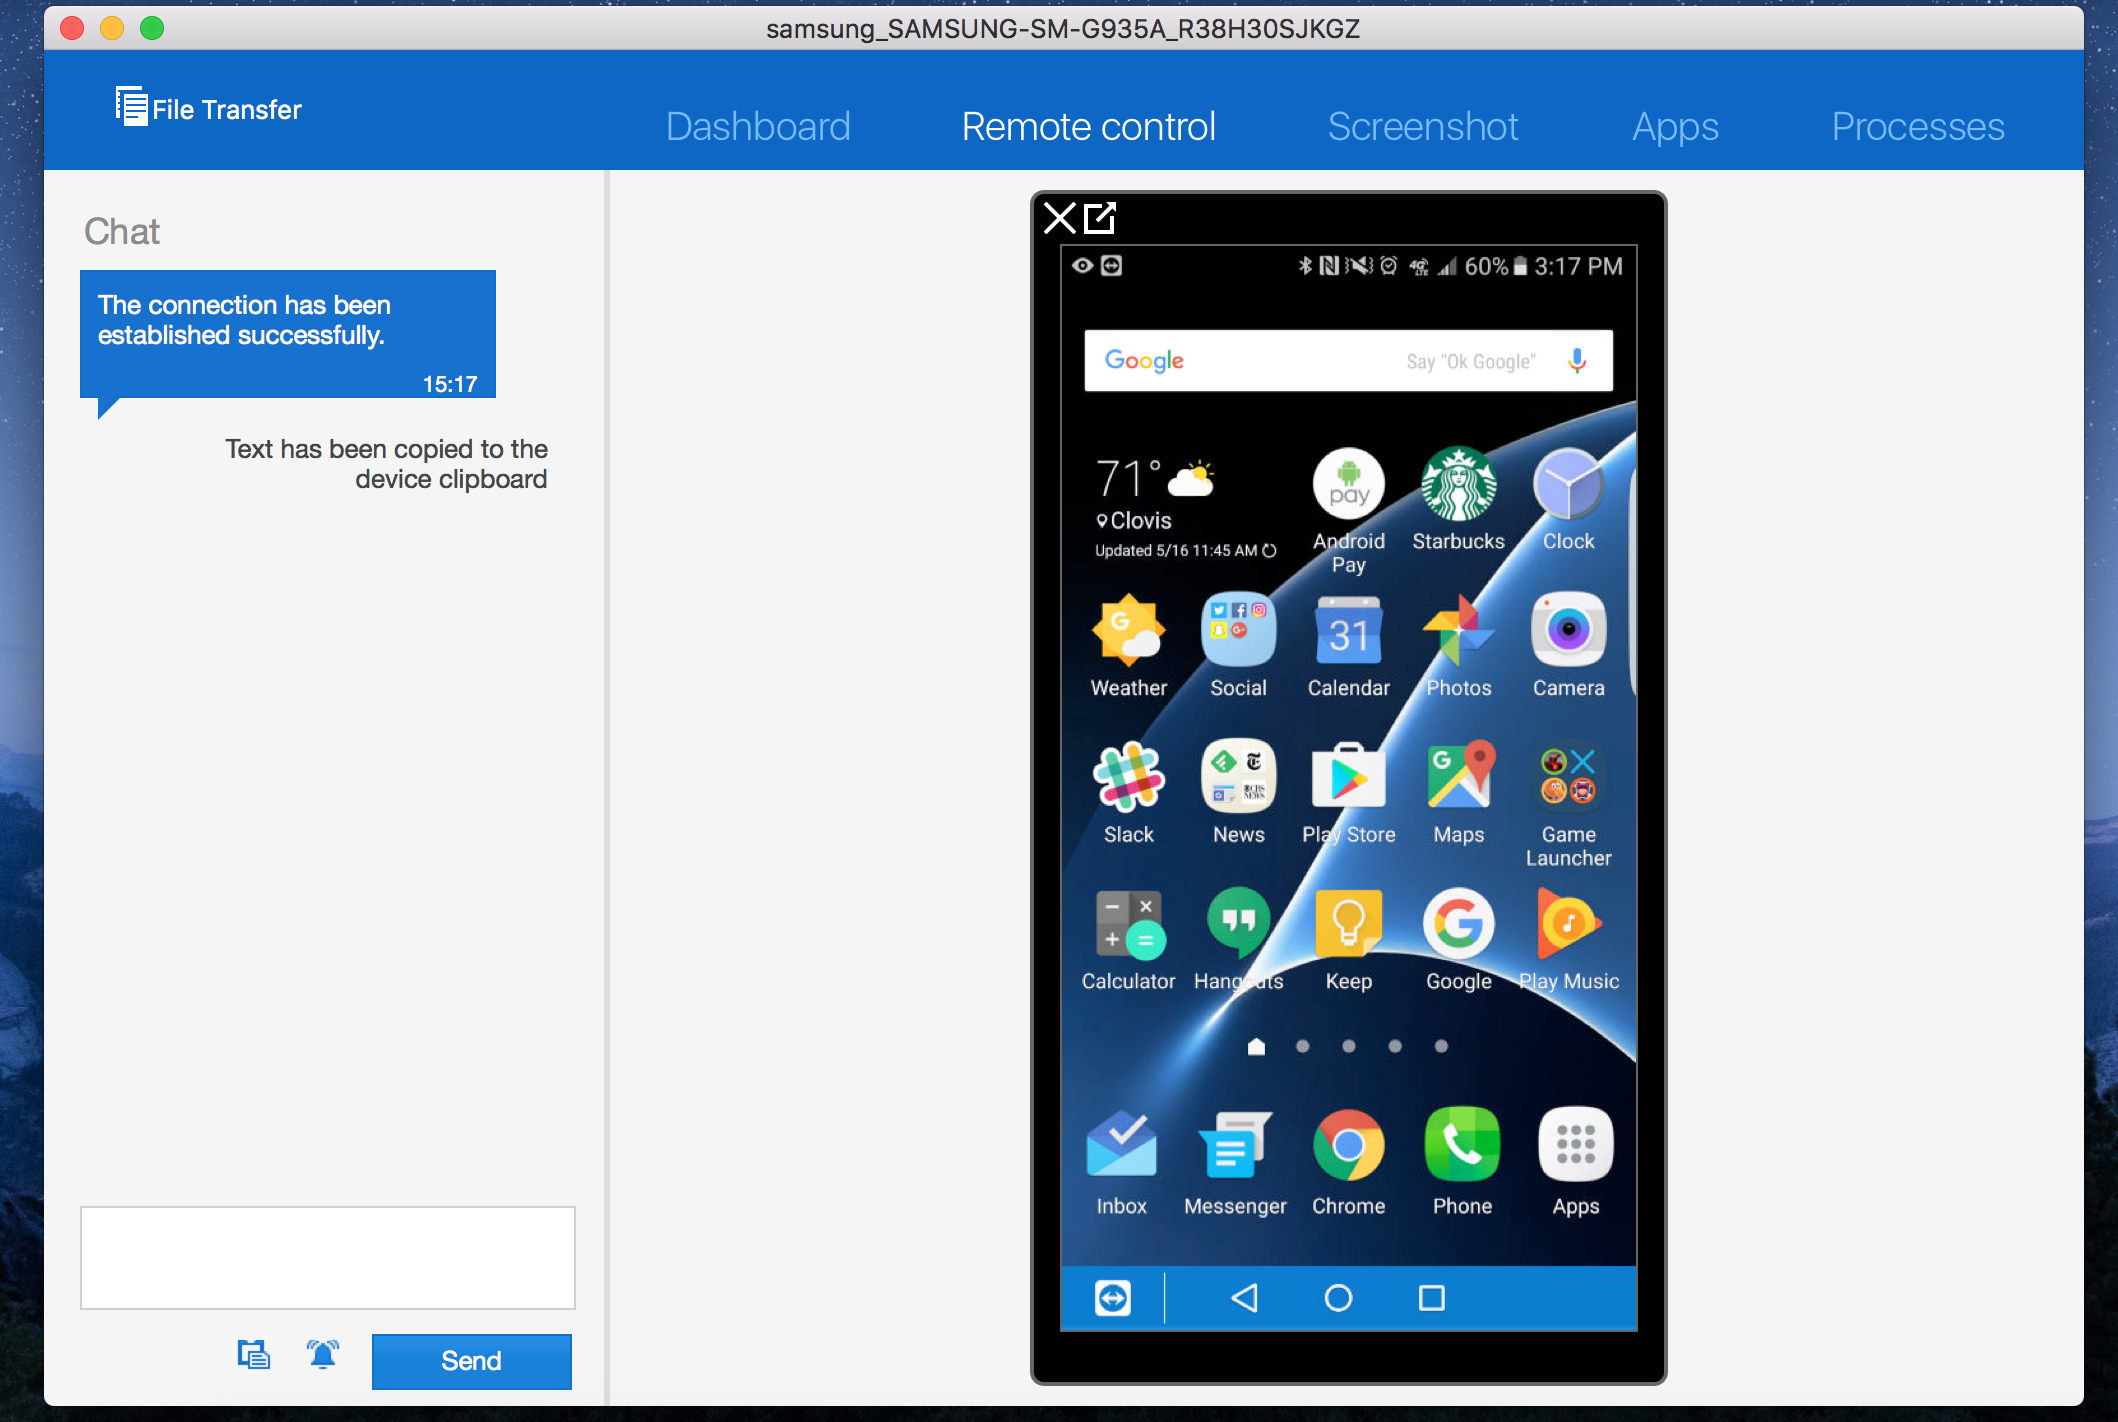 Five ways Google can make the Chrome browser and Android